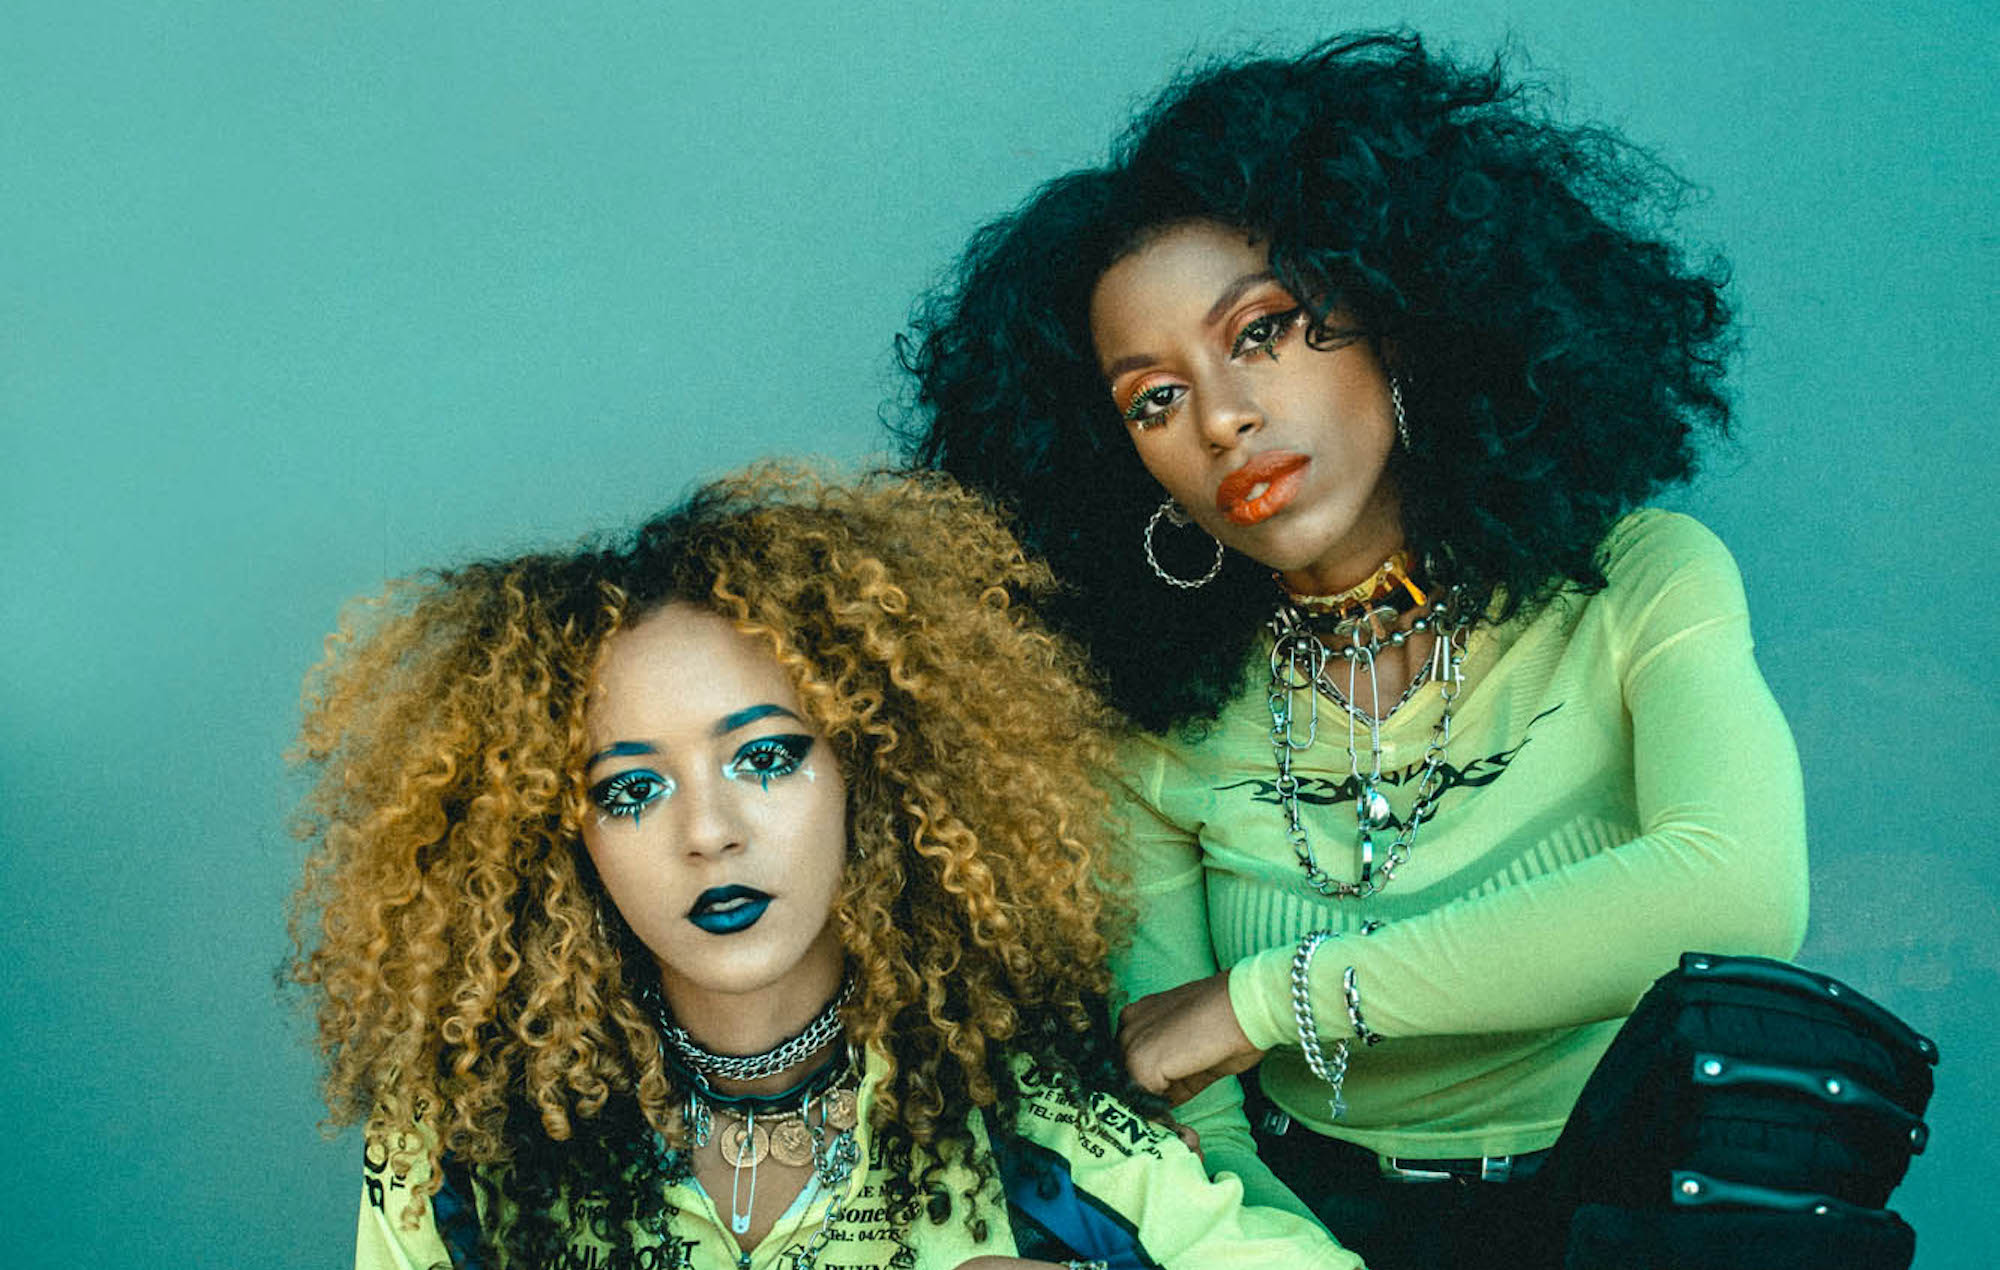 Nova Twins call on MOBO Awards to introduce Rock/Alternative category to 2021 awards